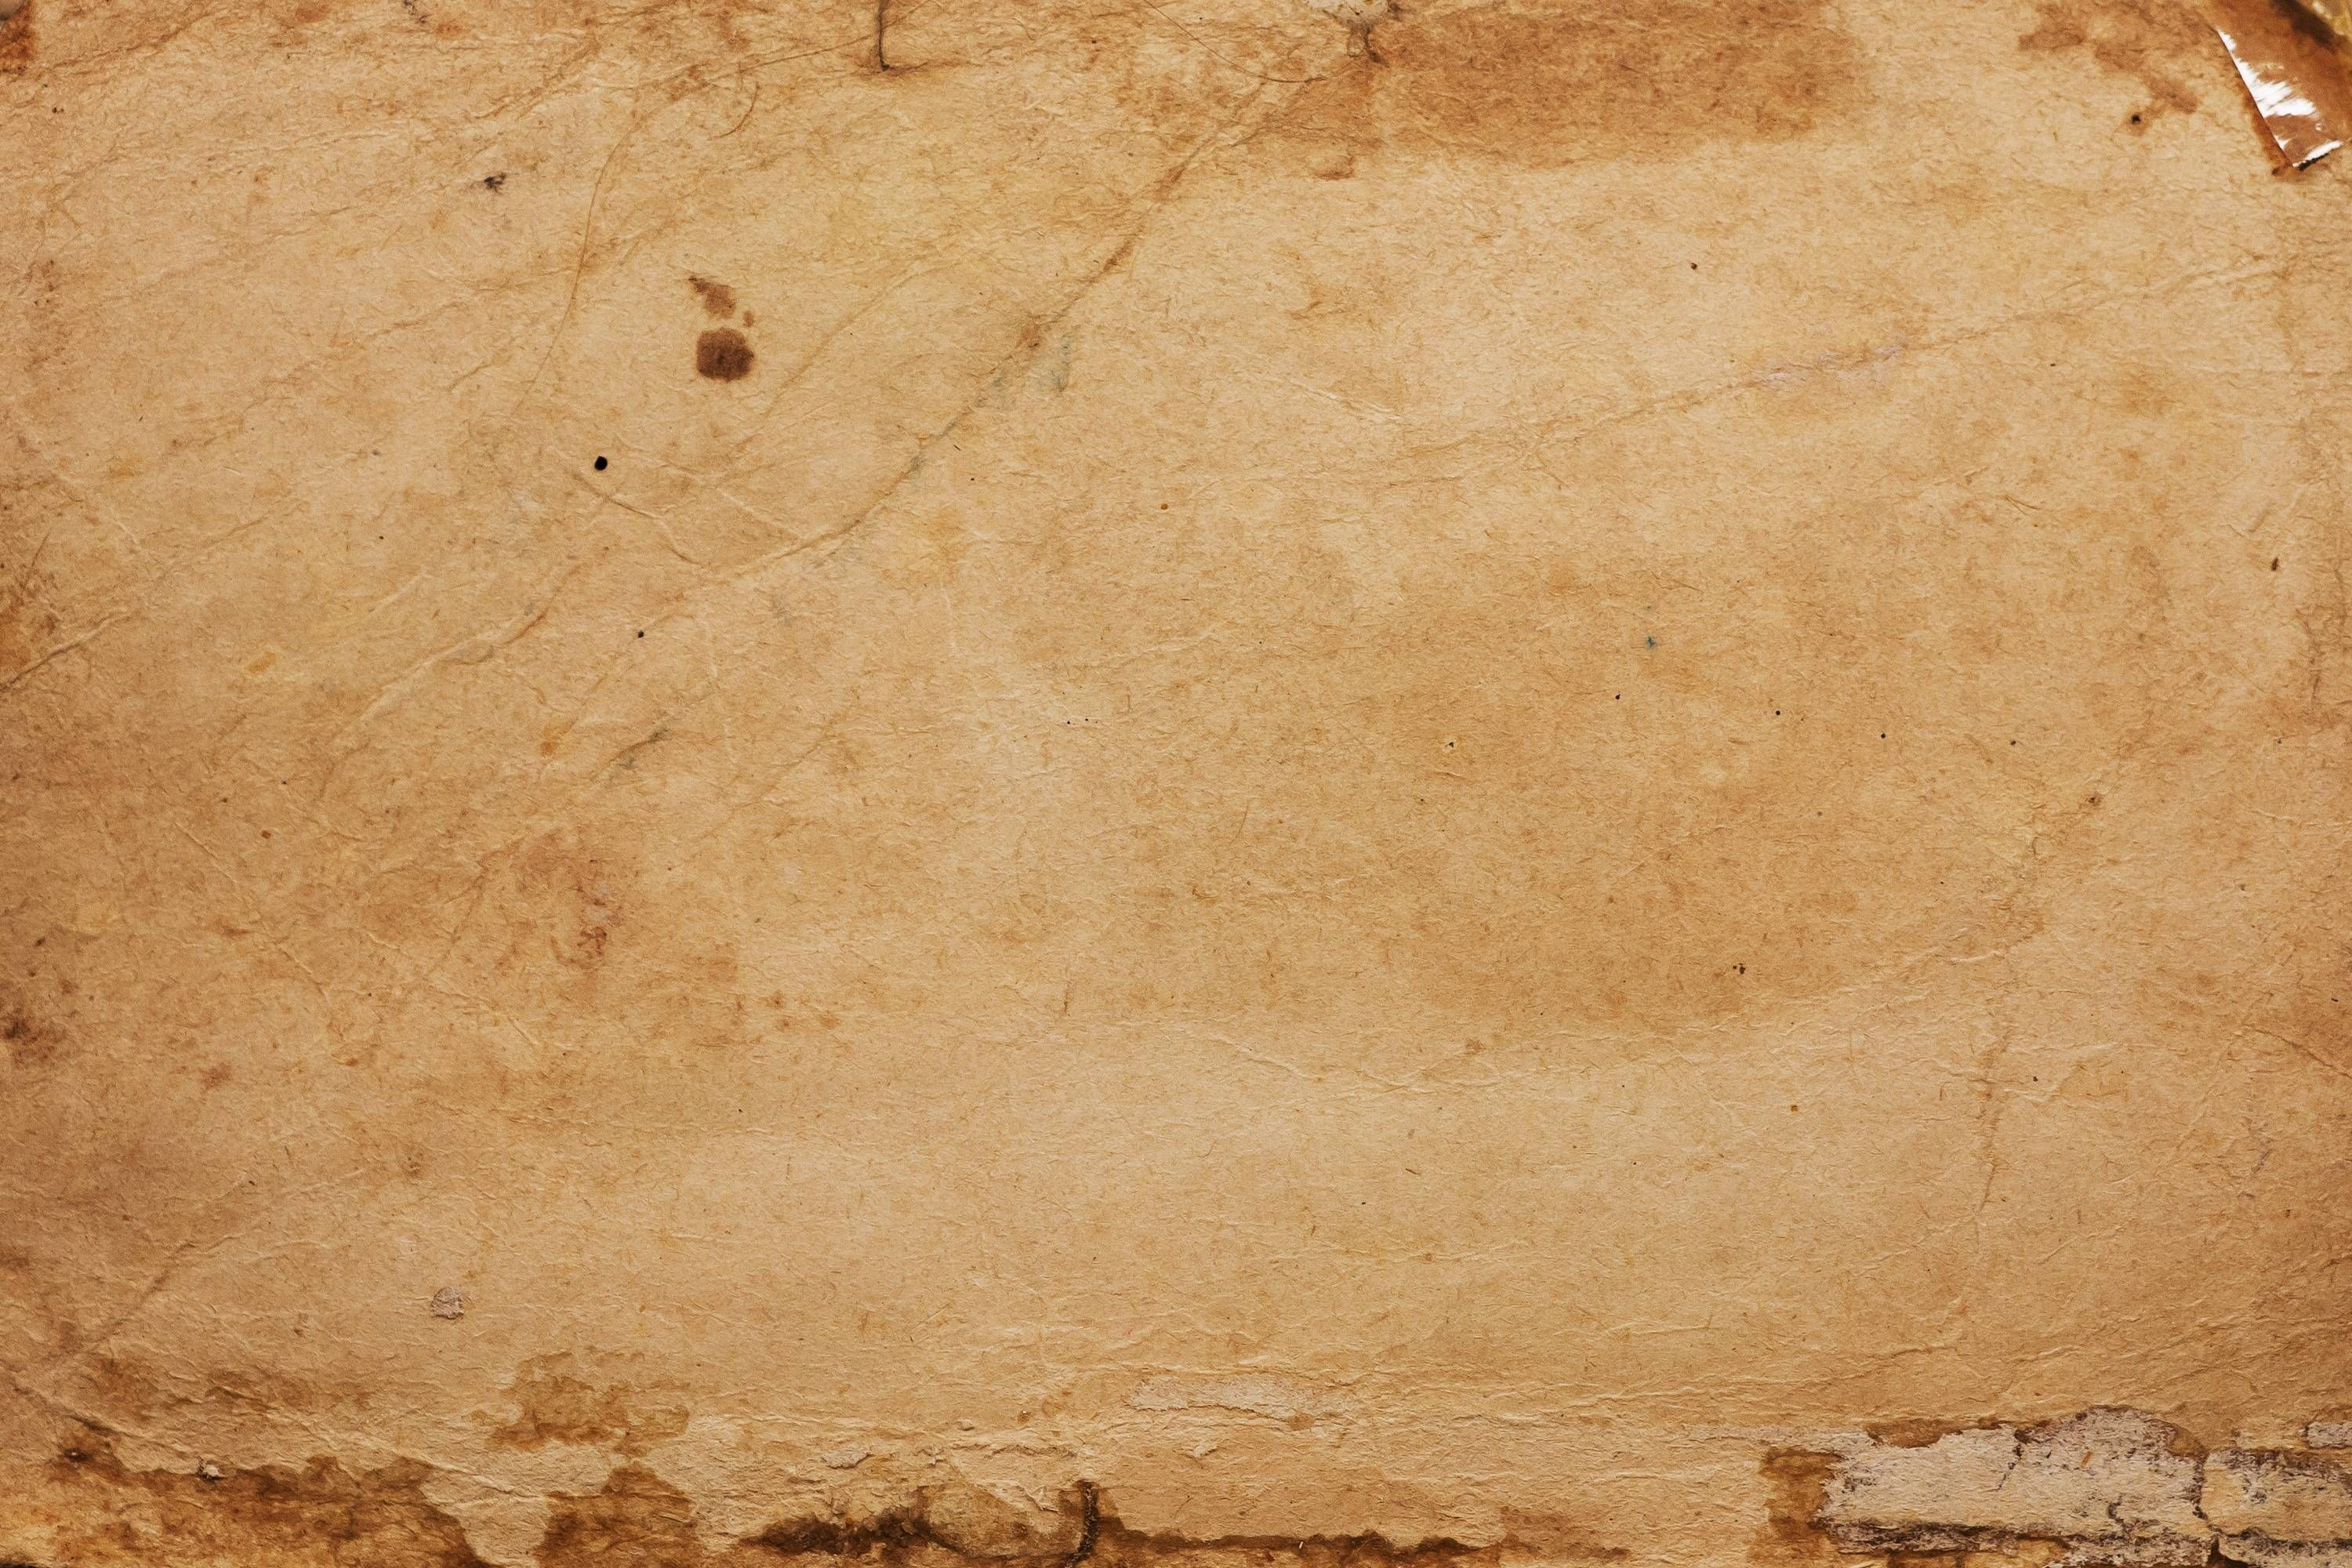 Old Paper Texture Hd Wallpapers High Definition 100 Quality Vintage Paper Textures Paper Texture Grunge Paper Textures